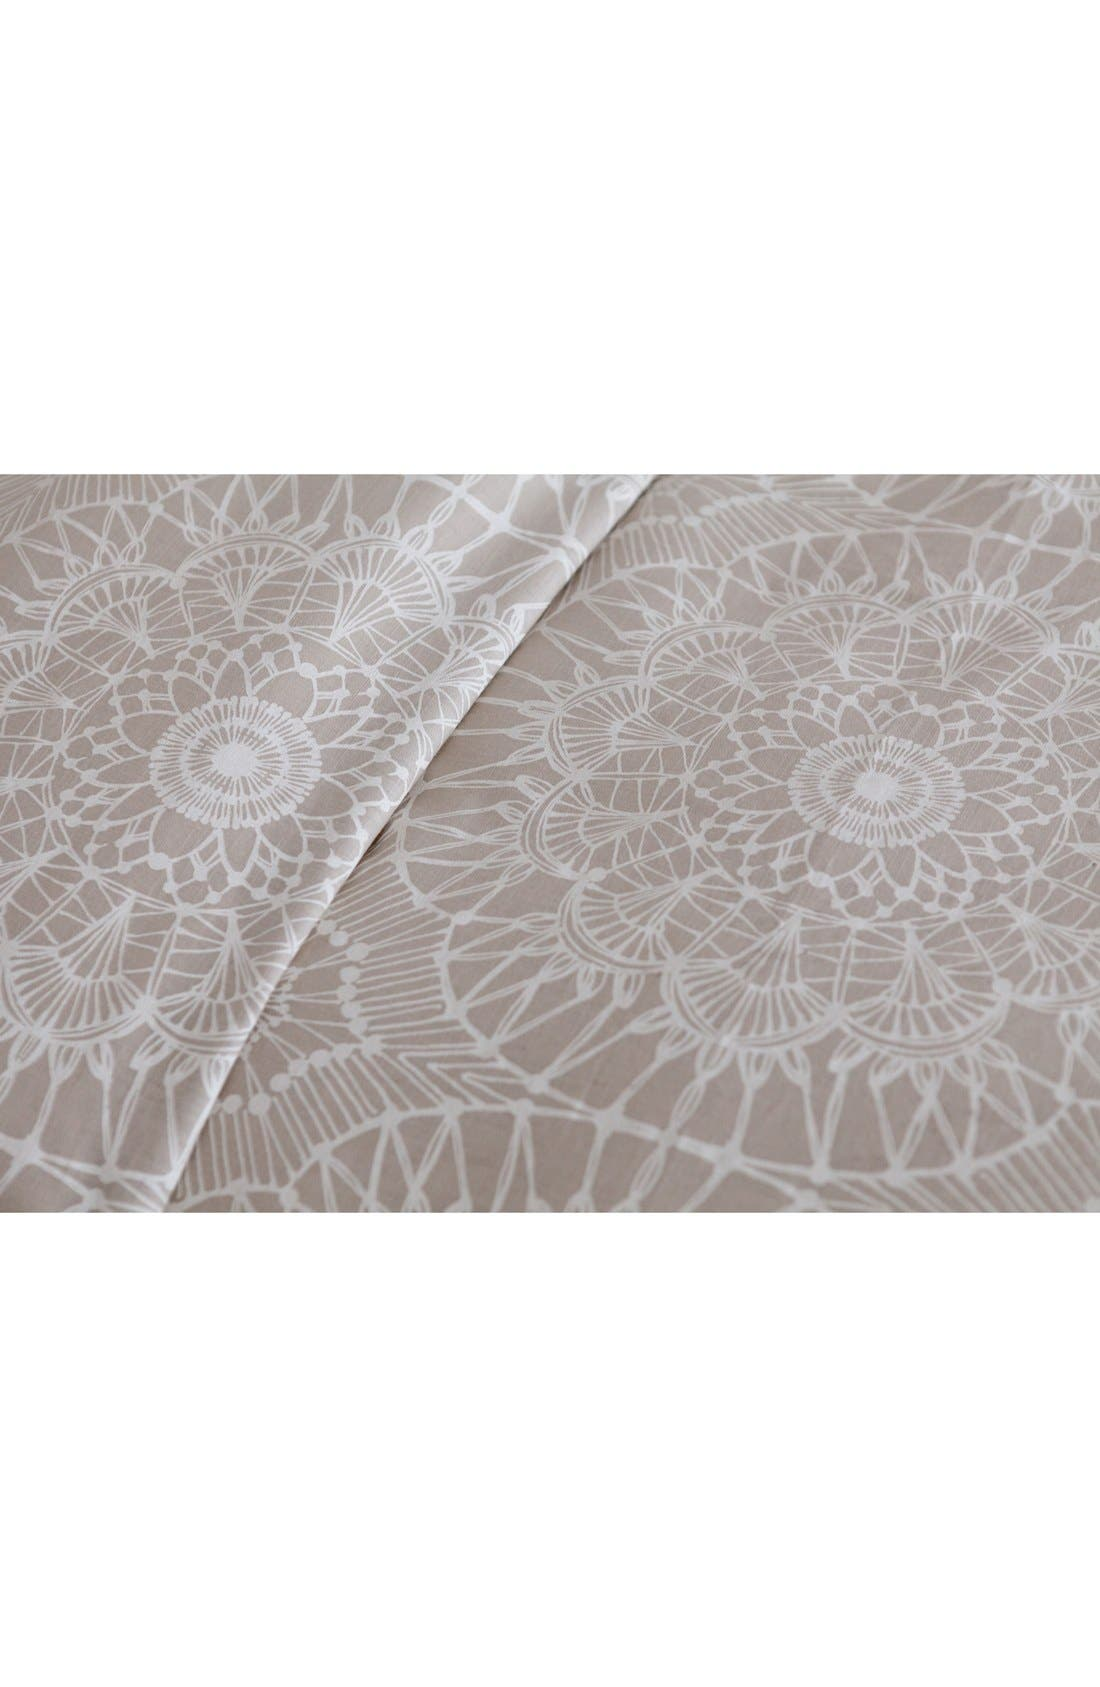 'Lace Medallion' Duvet Cover,                             Alternate thumbnail 4, color,                             250